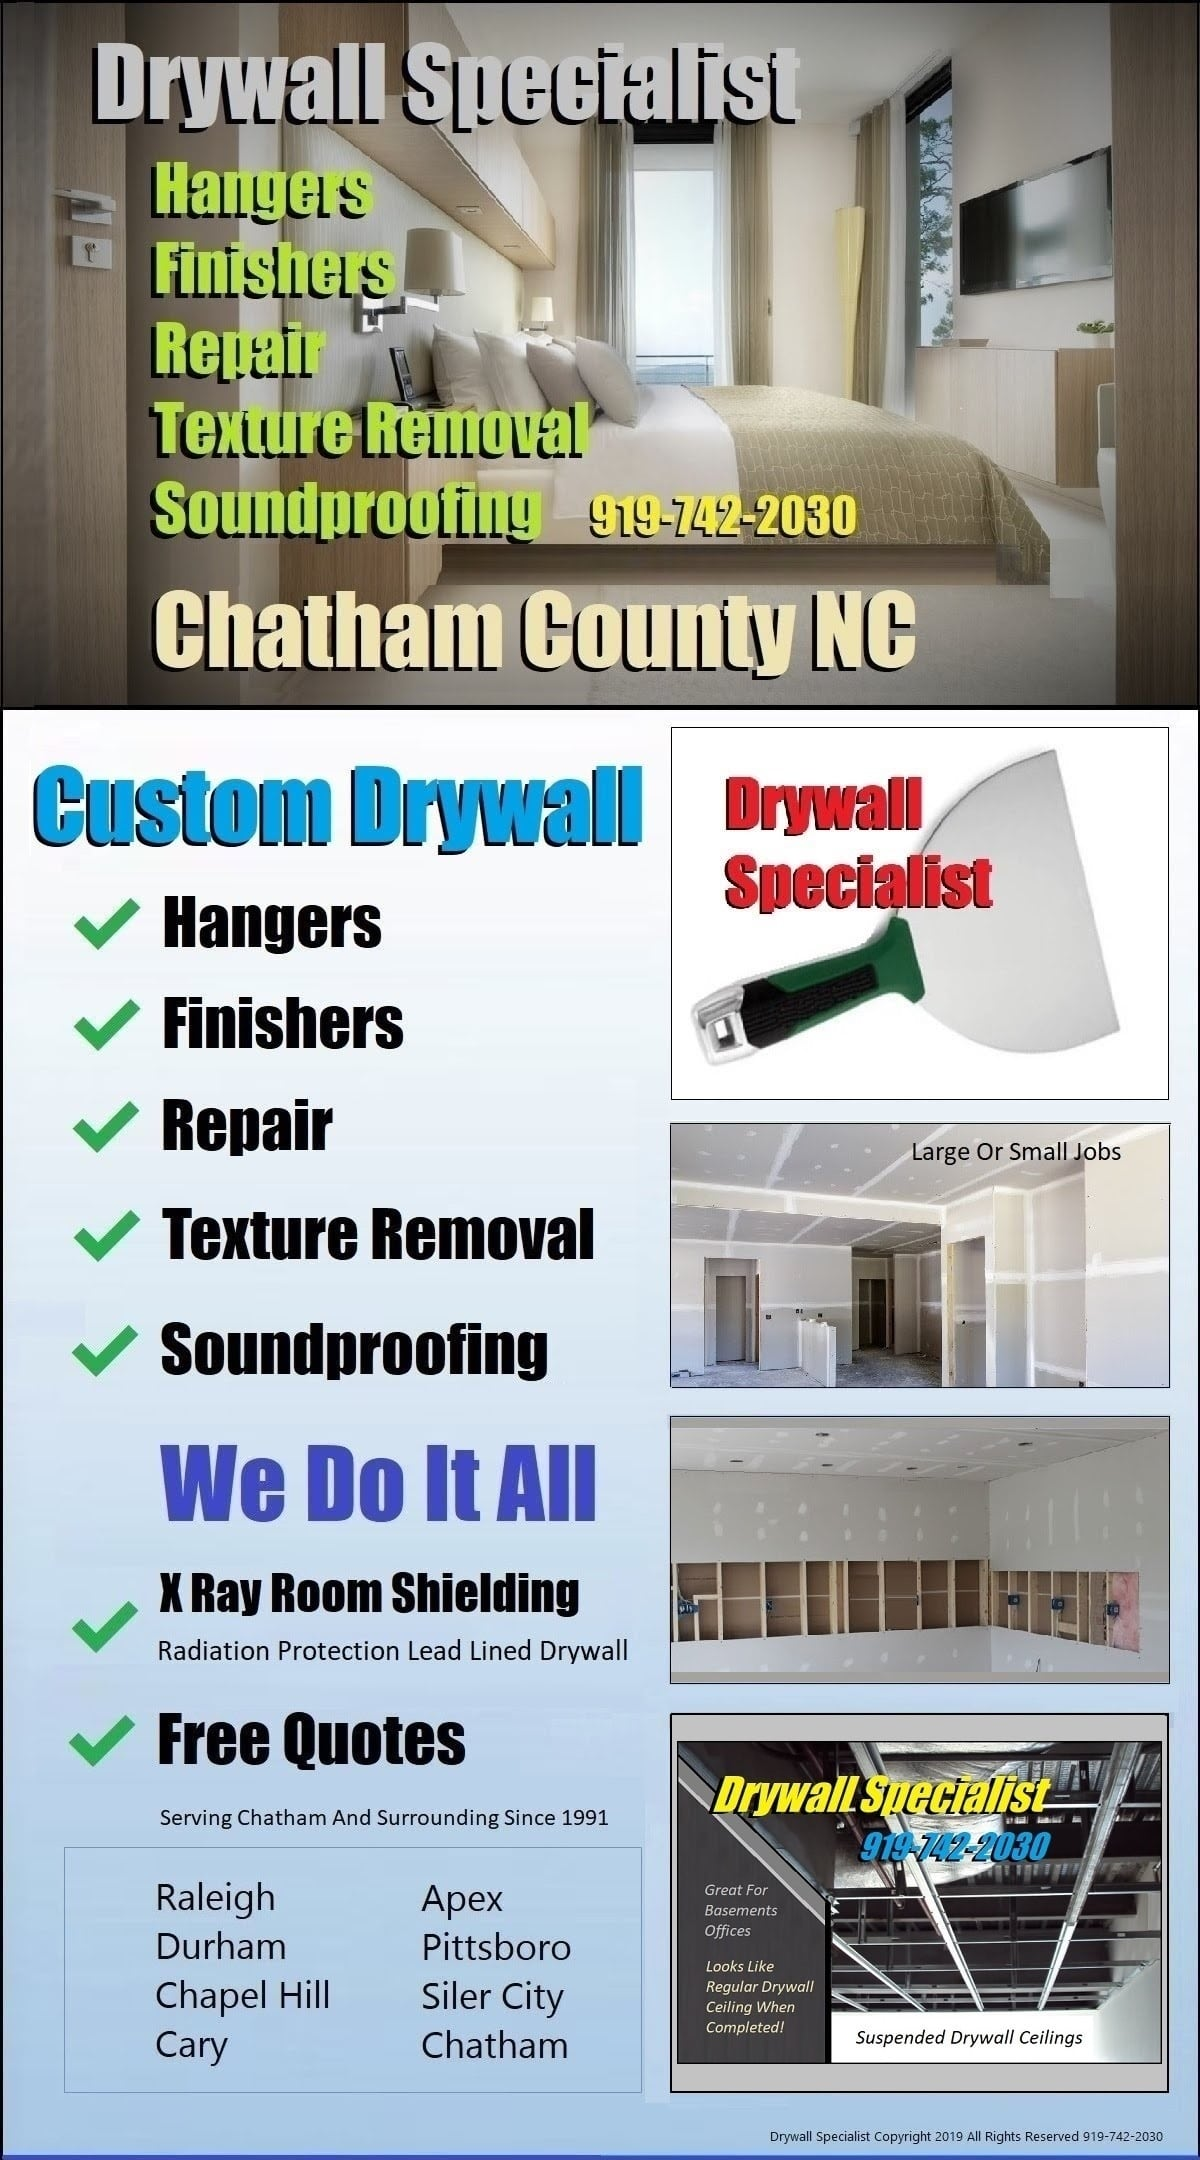 Nextdoor #Popcorn Texture Removal Extraction Elimination Work Orange County NC